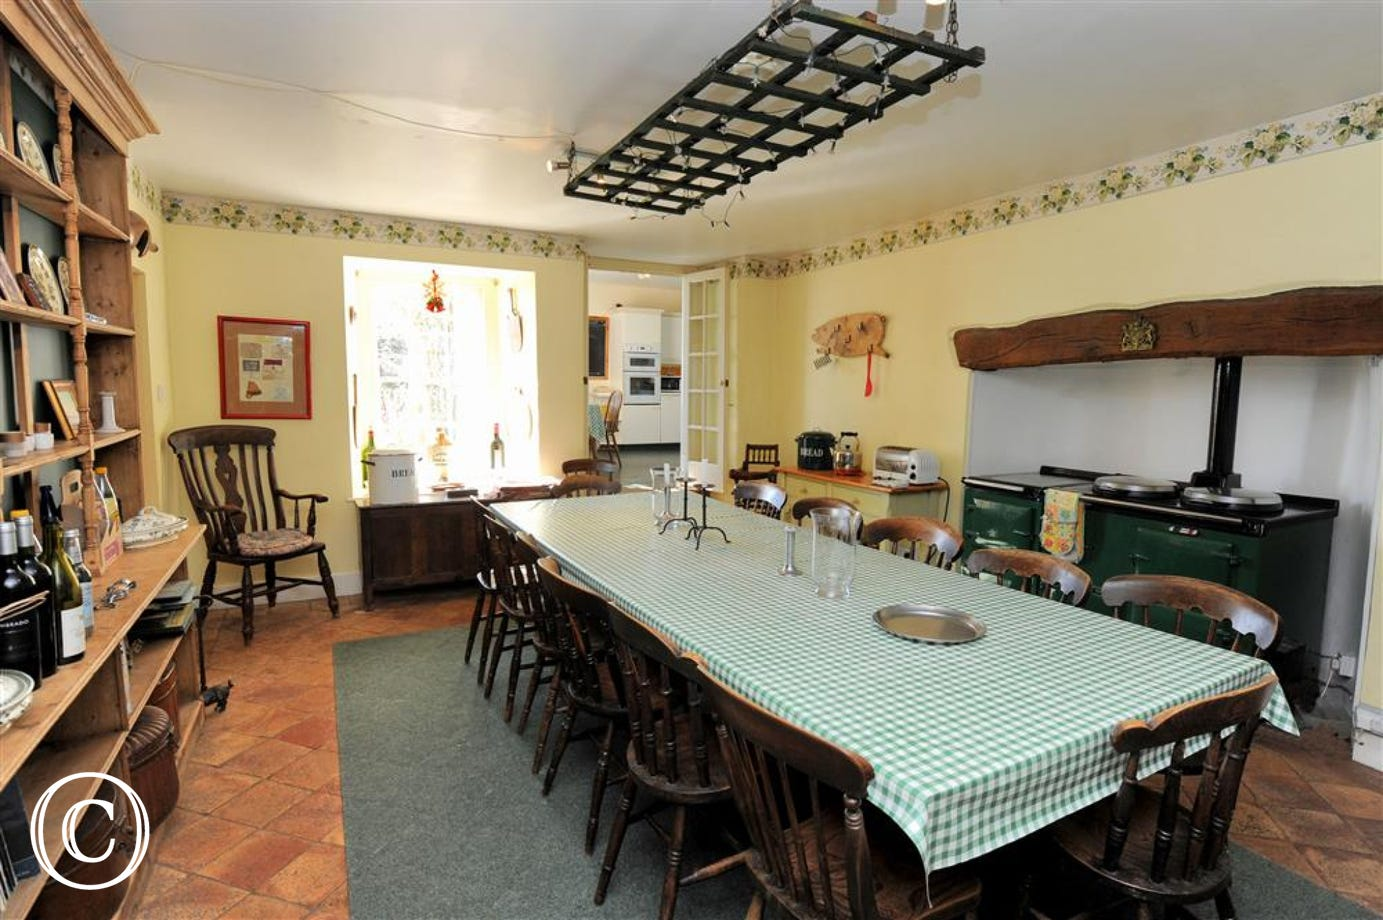 Large table & chairs easily accommodating all the family to discuss the days events.